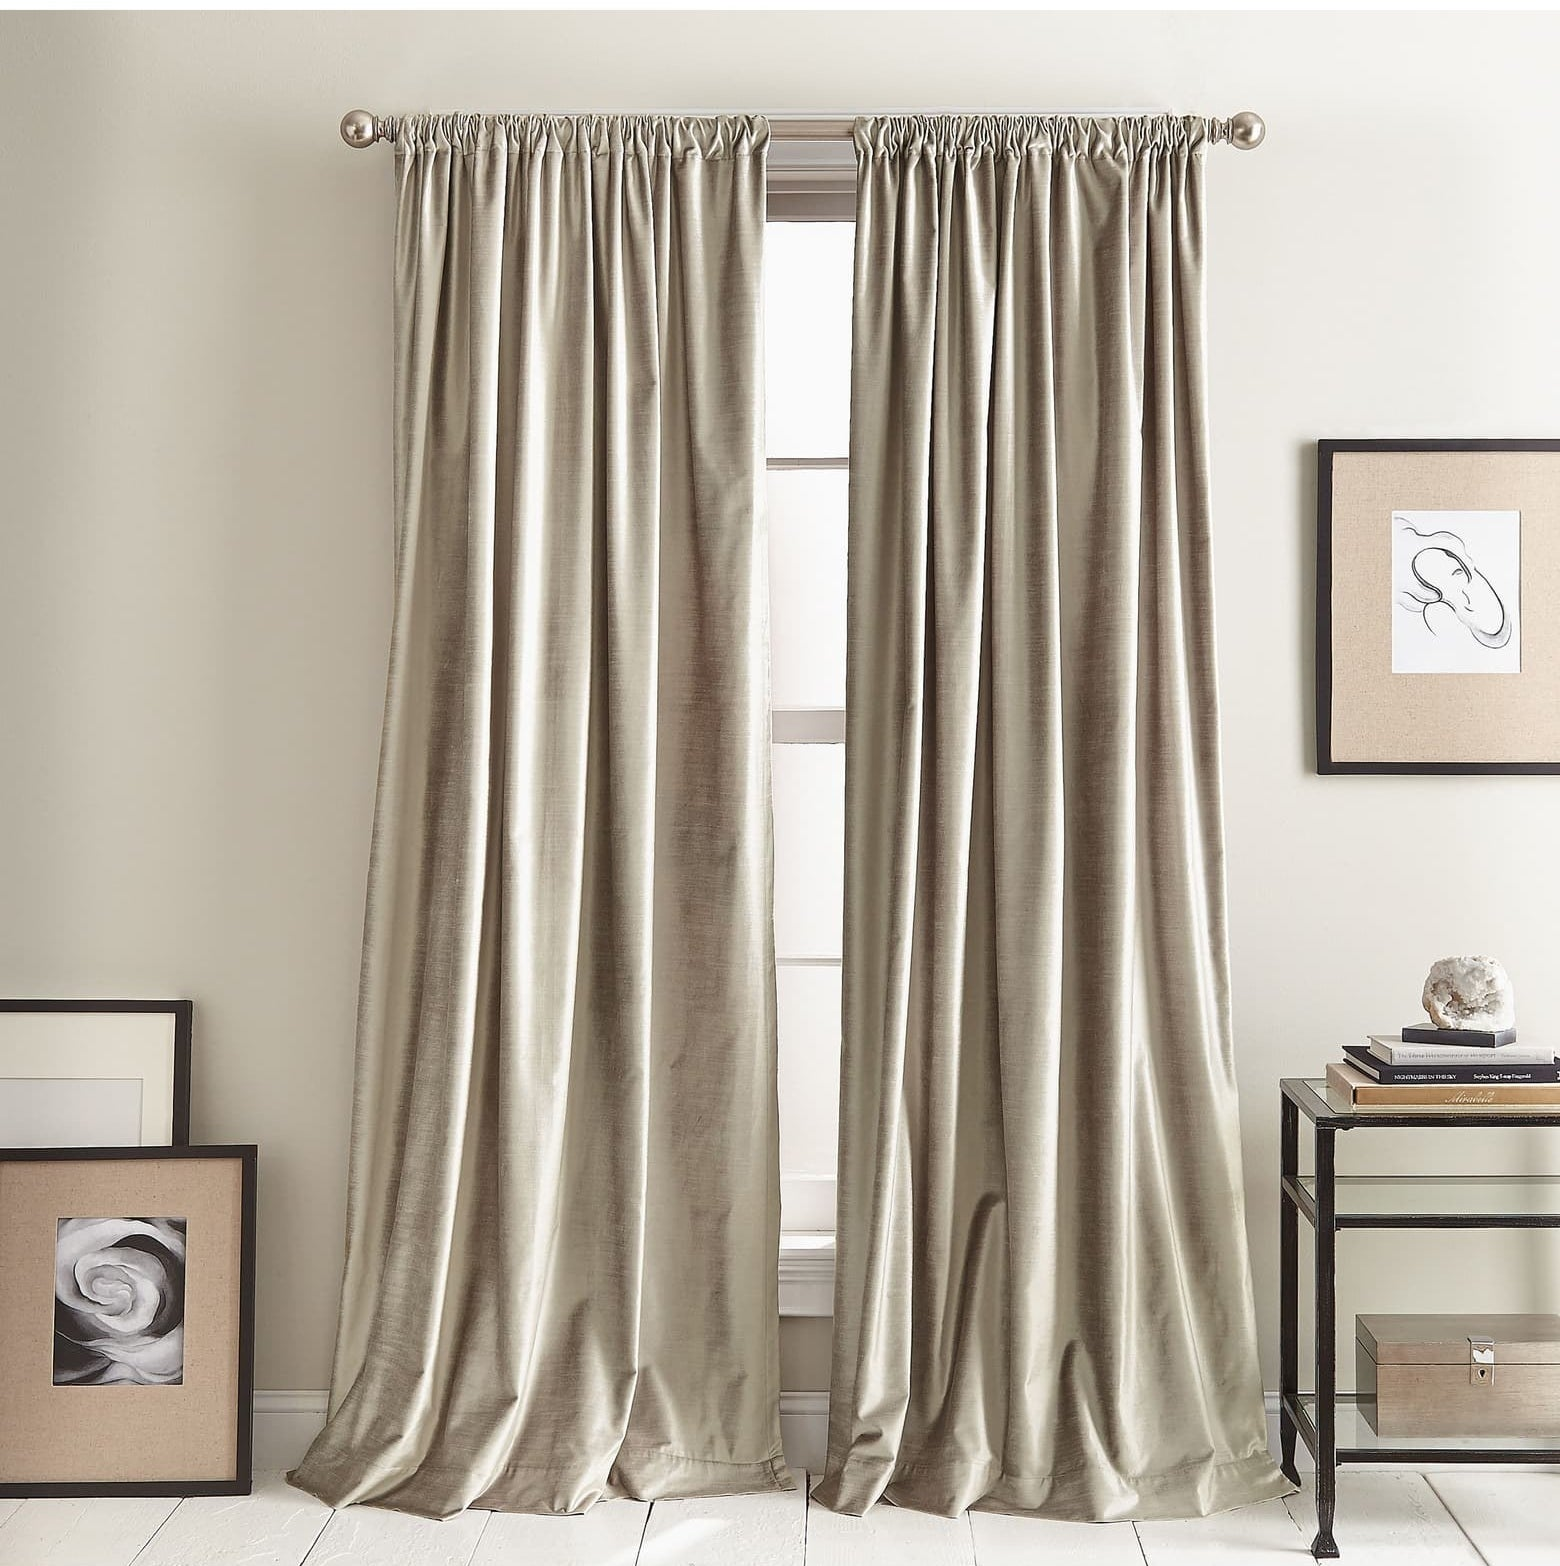 The velvet curtains in gold on a window in a room